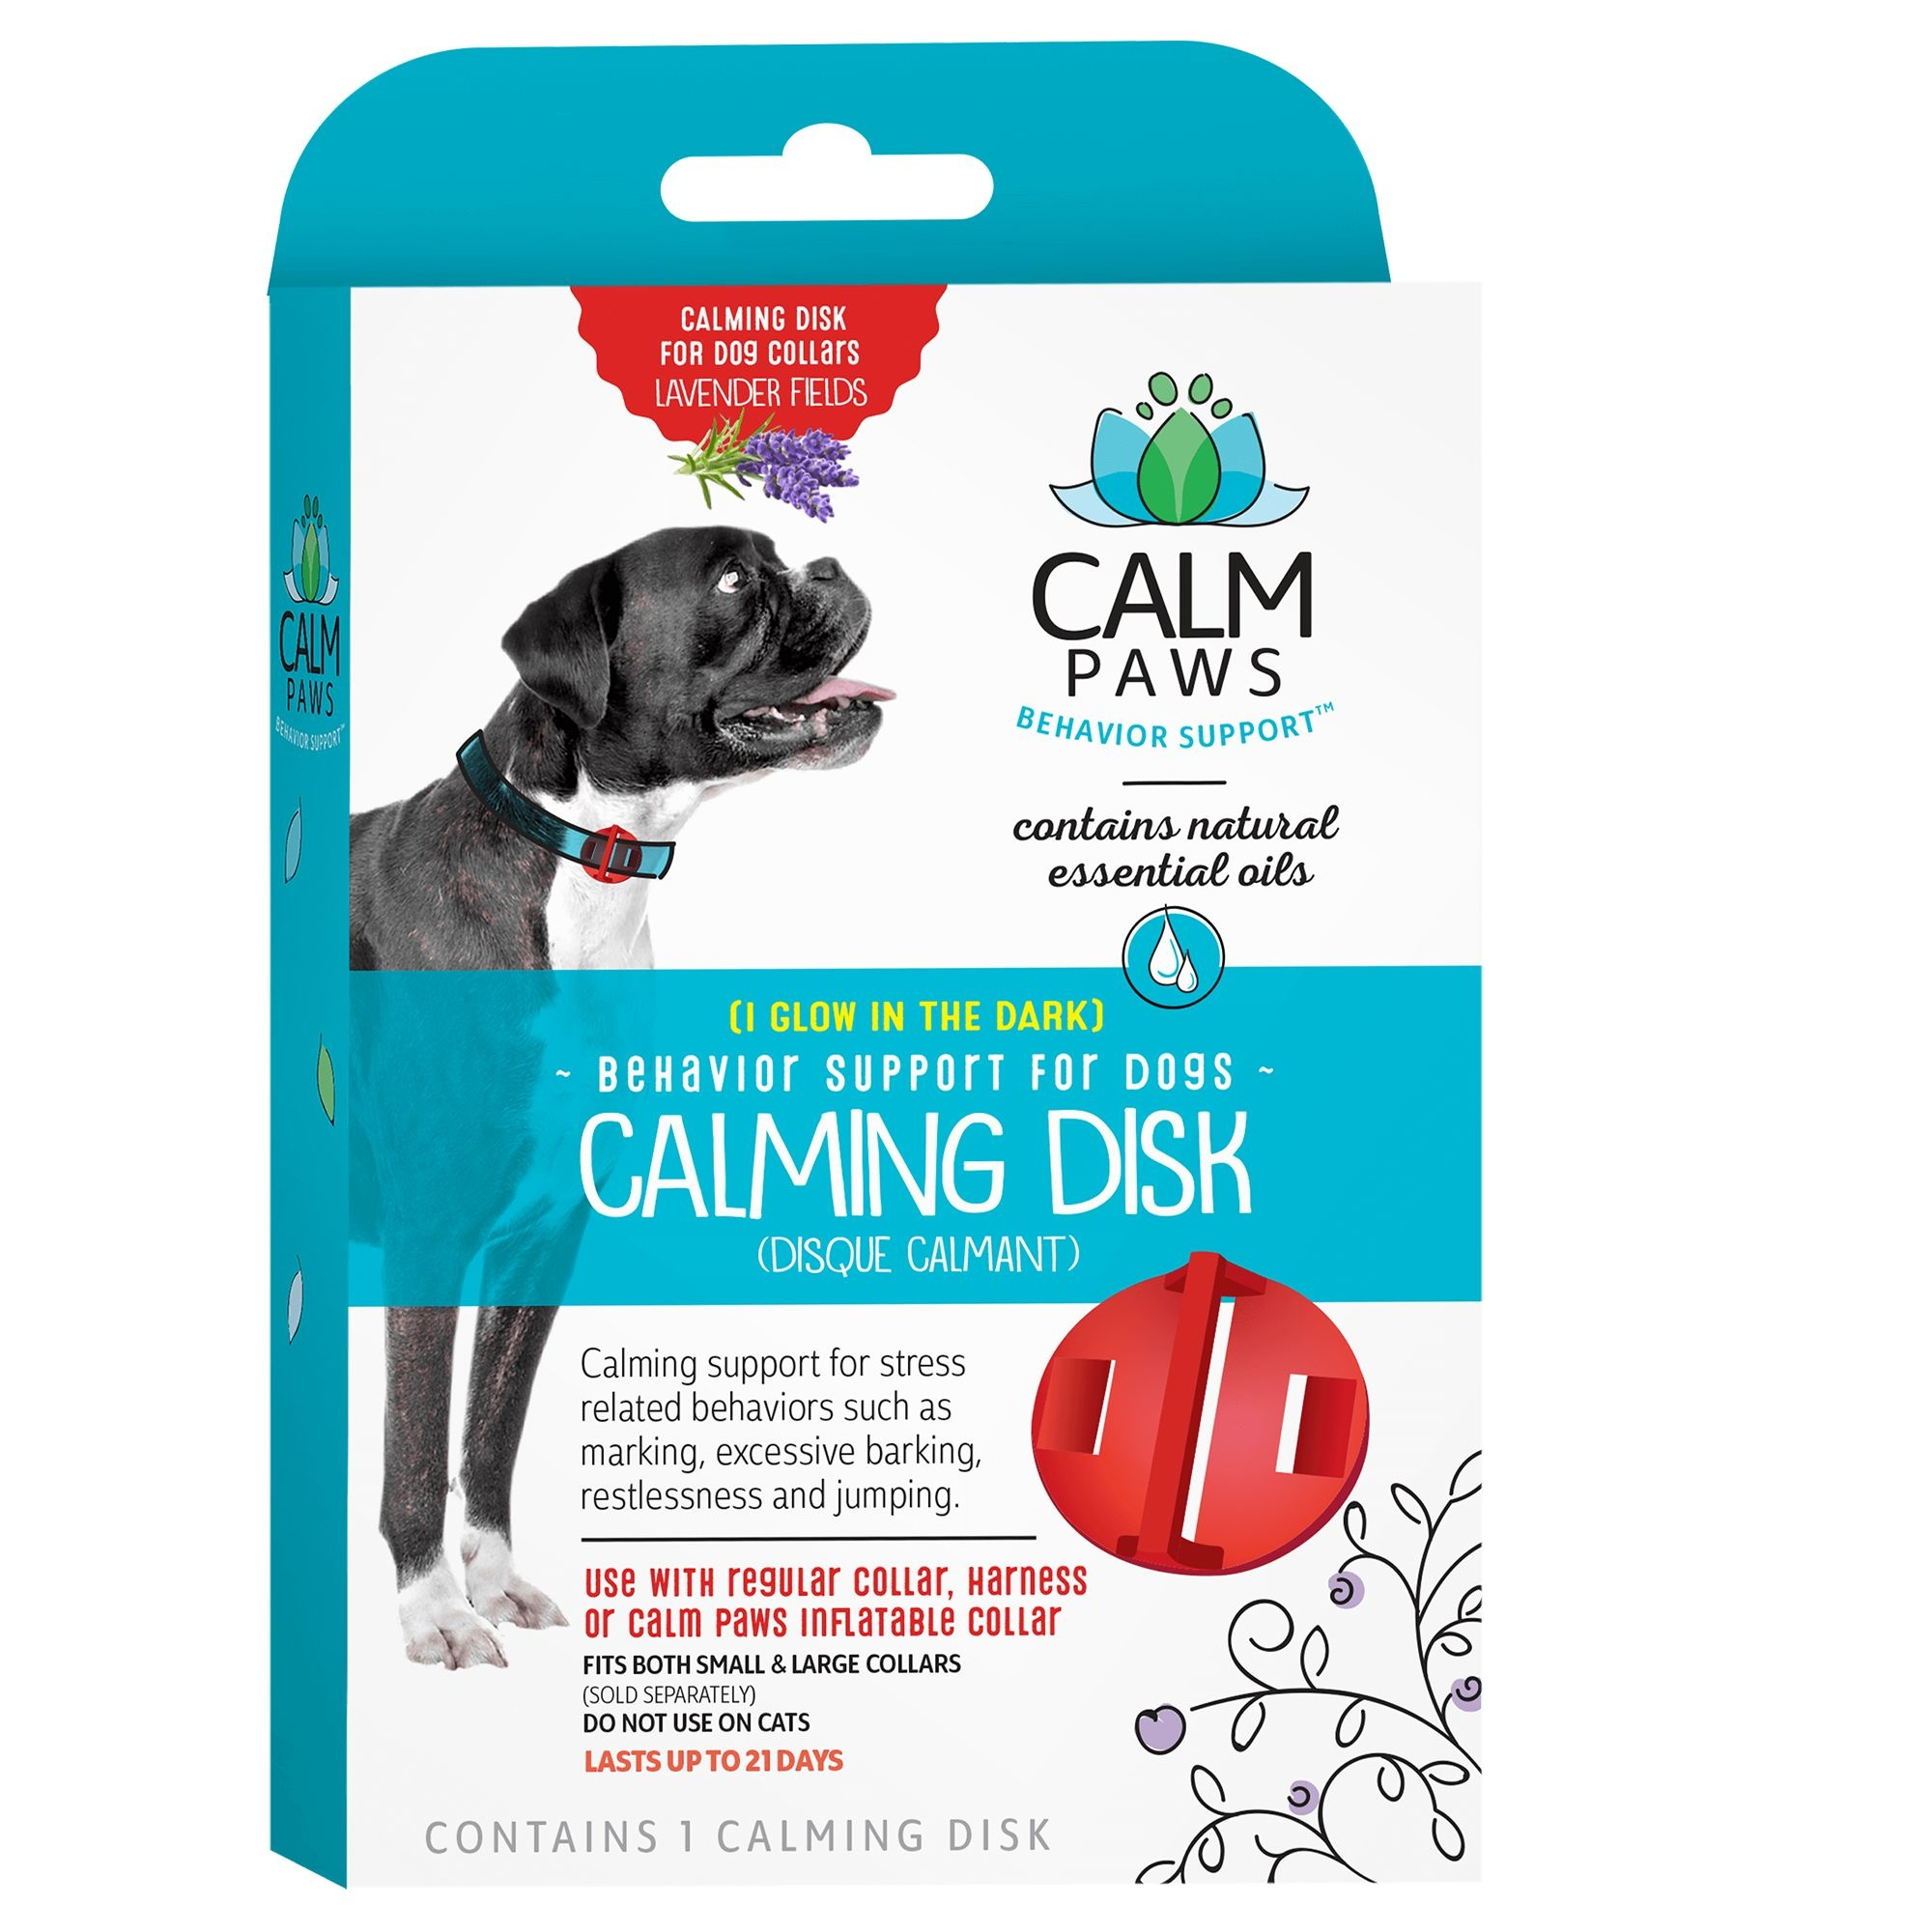 21st Centry Animal Health Care Calm Paws Behavior Support Calming Disc for Dogs